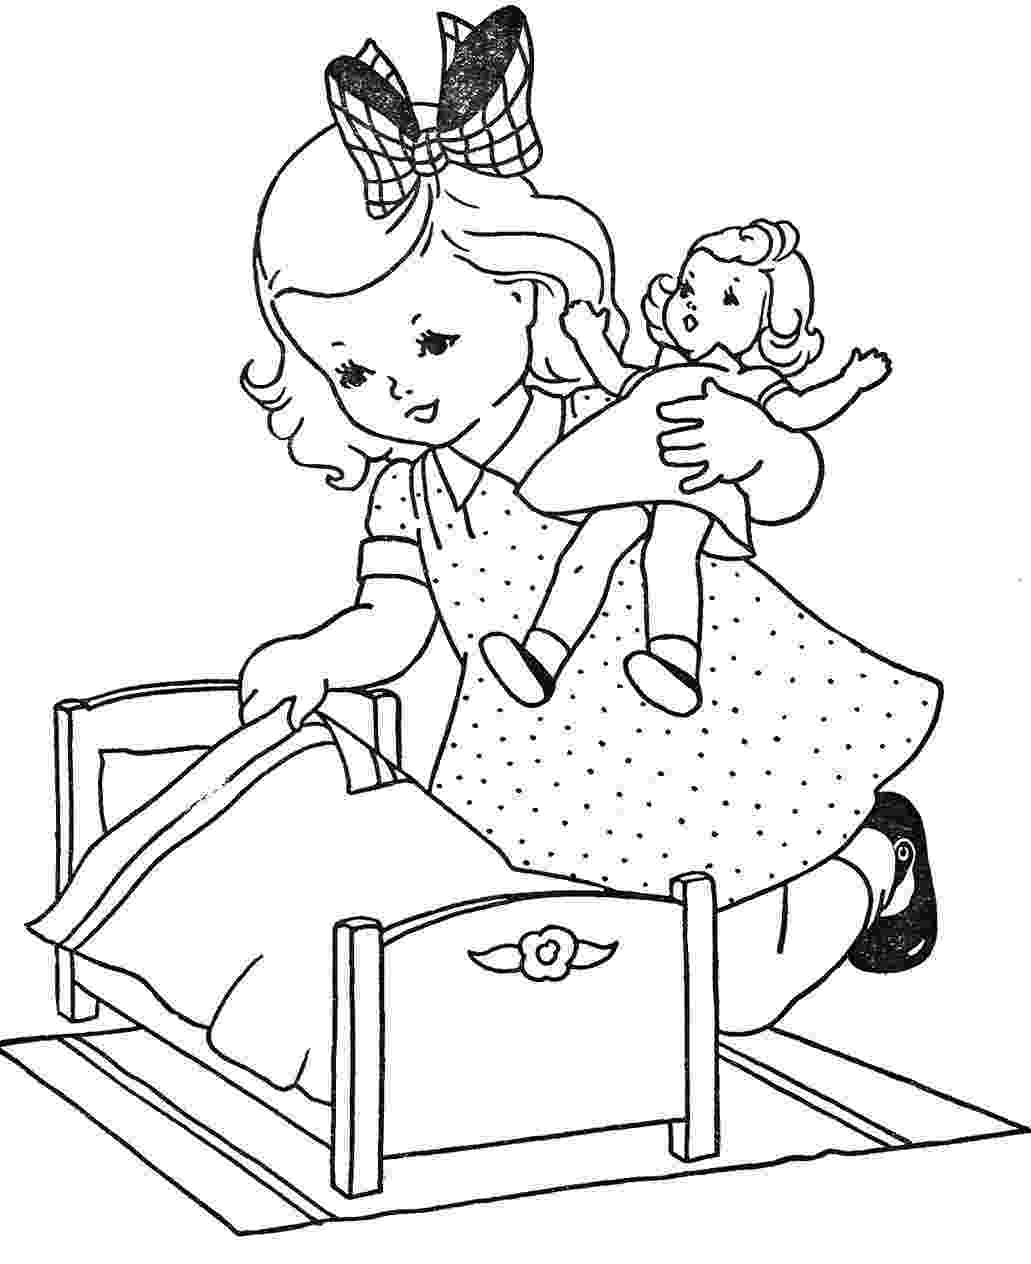 free printable american girl doll coloring pages american girl doll coloring pages to download and print pages coloring doll american girl printable free